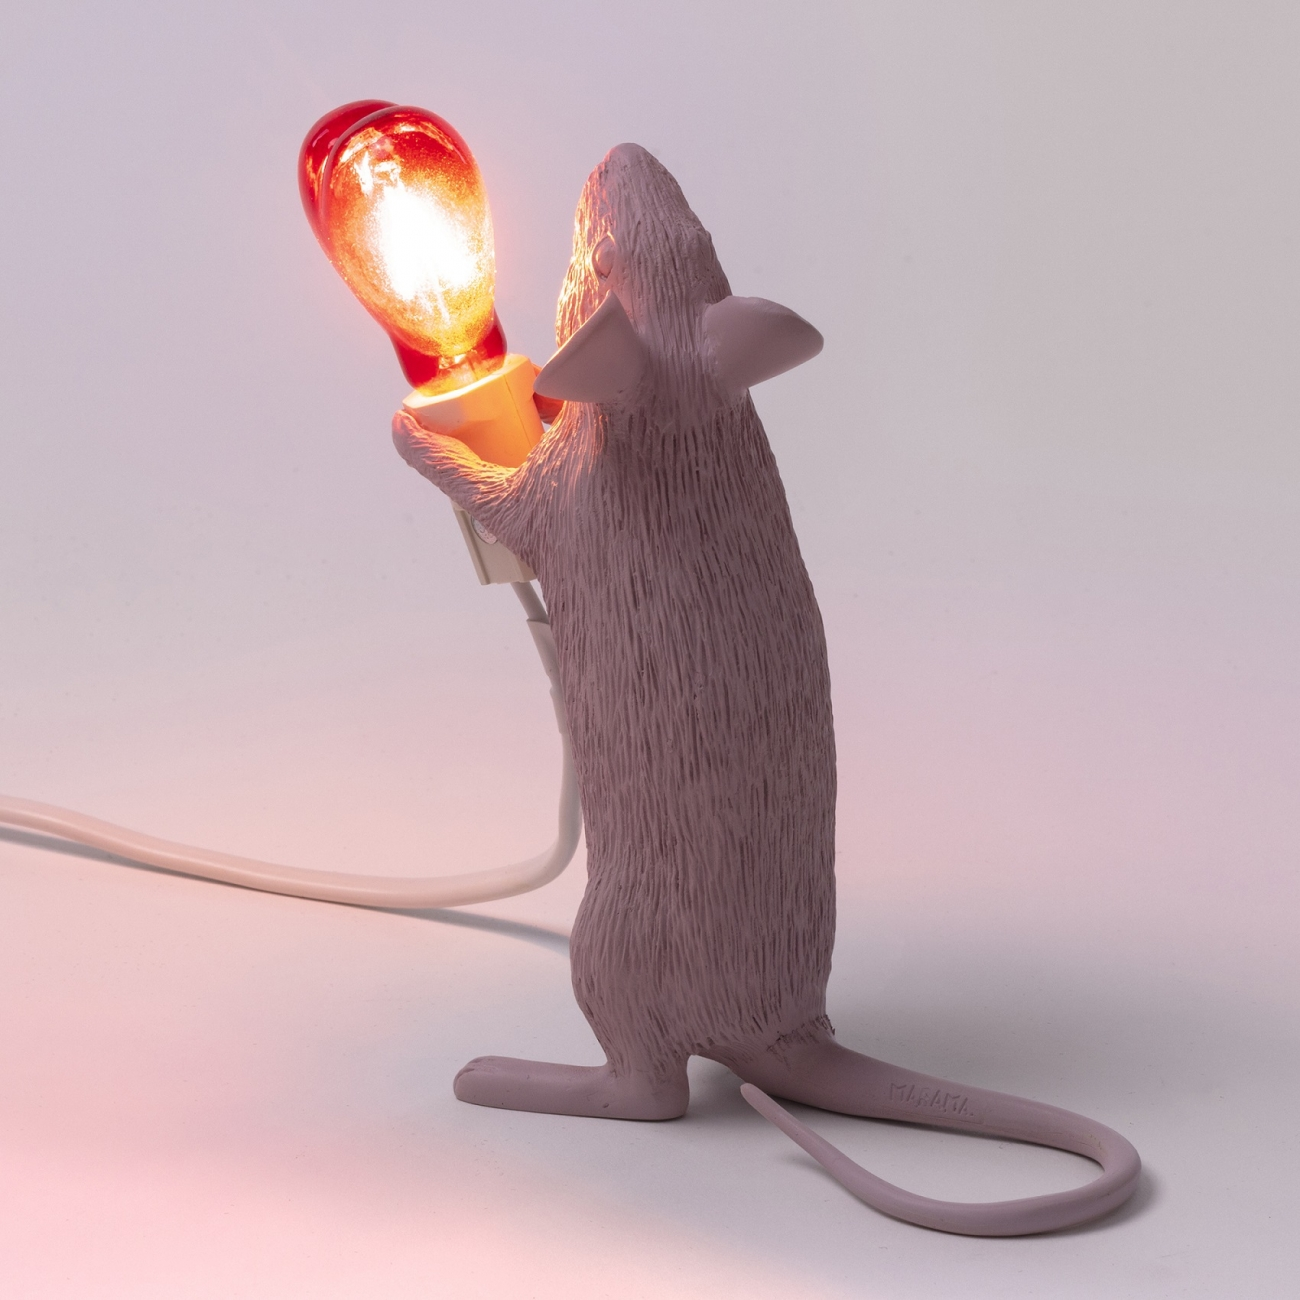 Tattahome Seletti Edition Mouse Lamp Love 5c4Rj3ALq